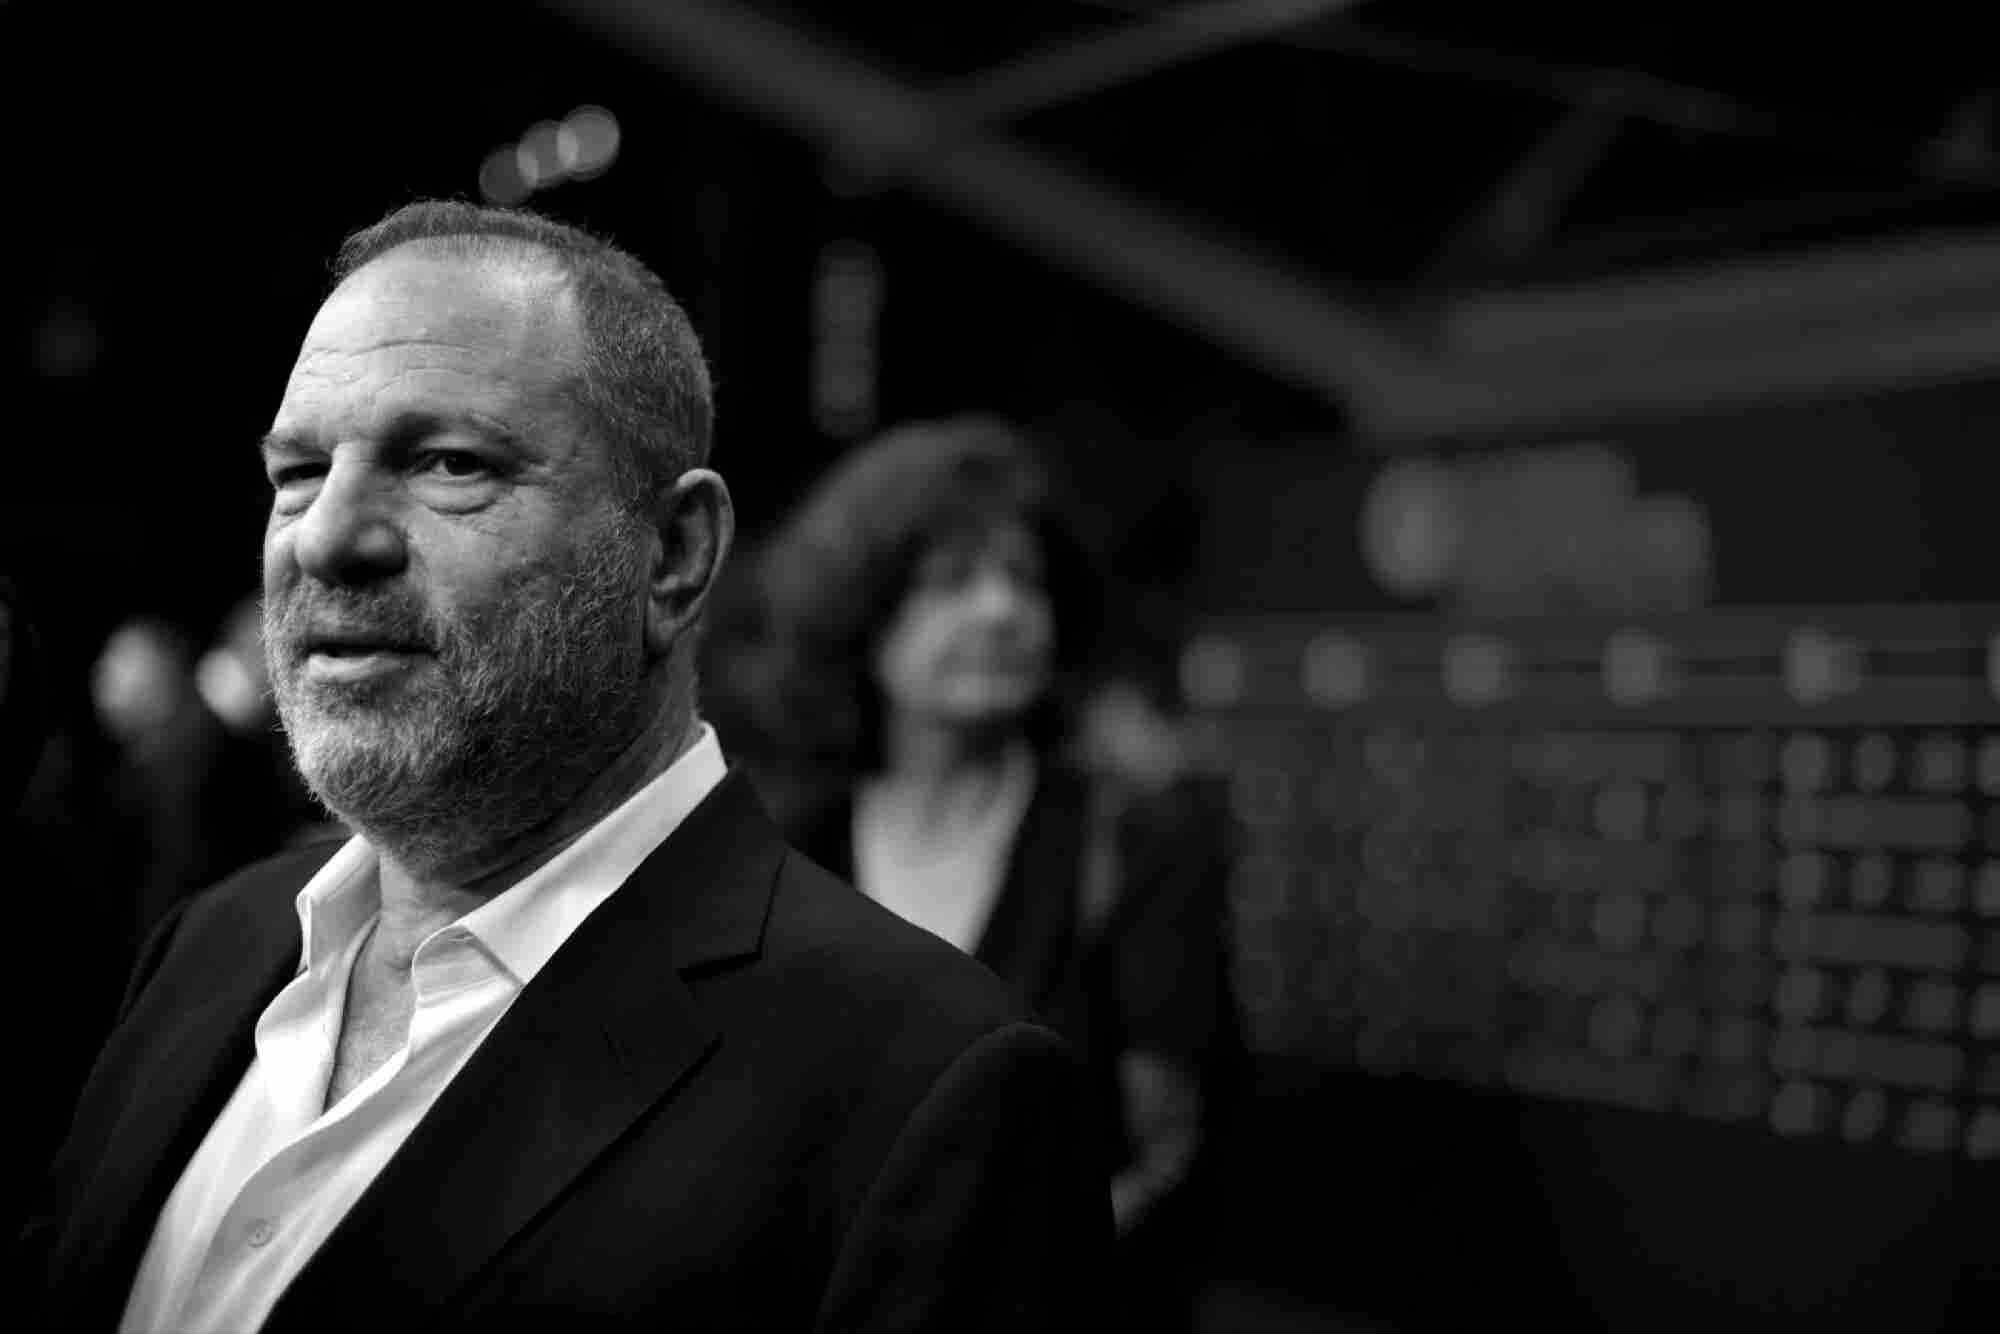 The 'Harvey Weinstein' Problem Need Not Be a Death Sentence for Companies